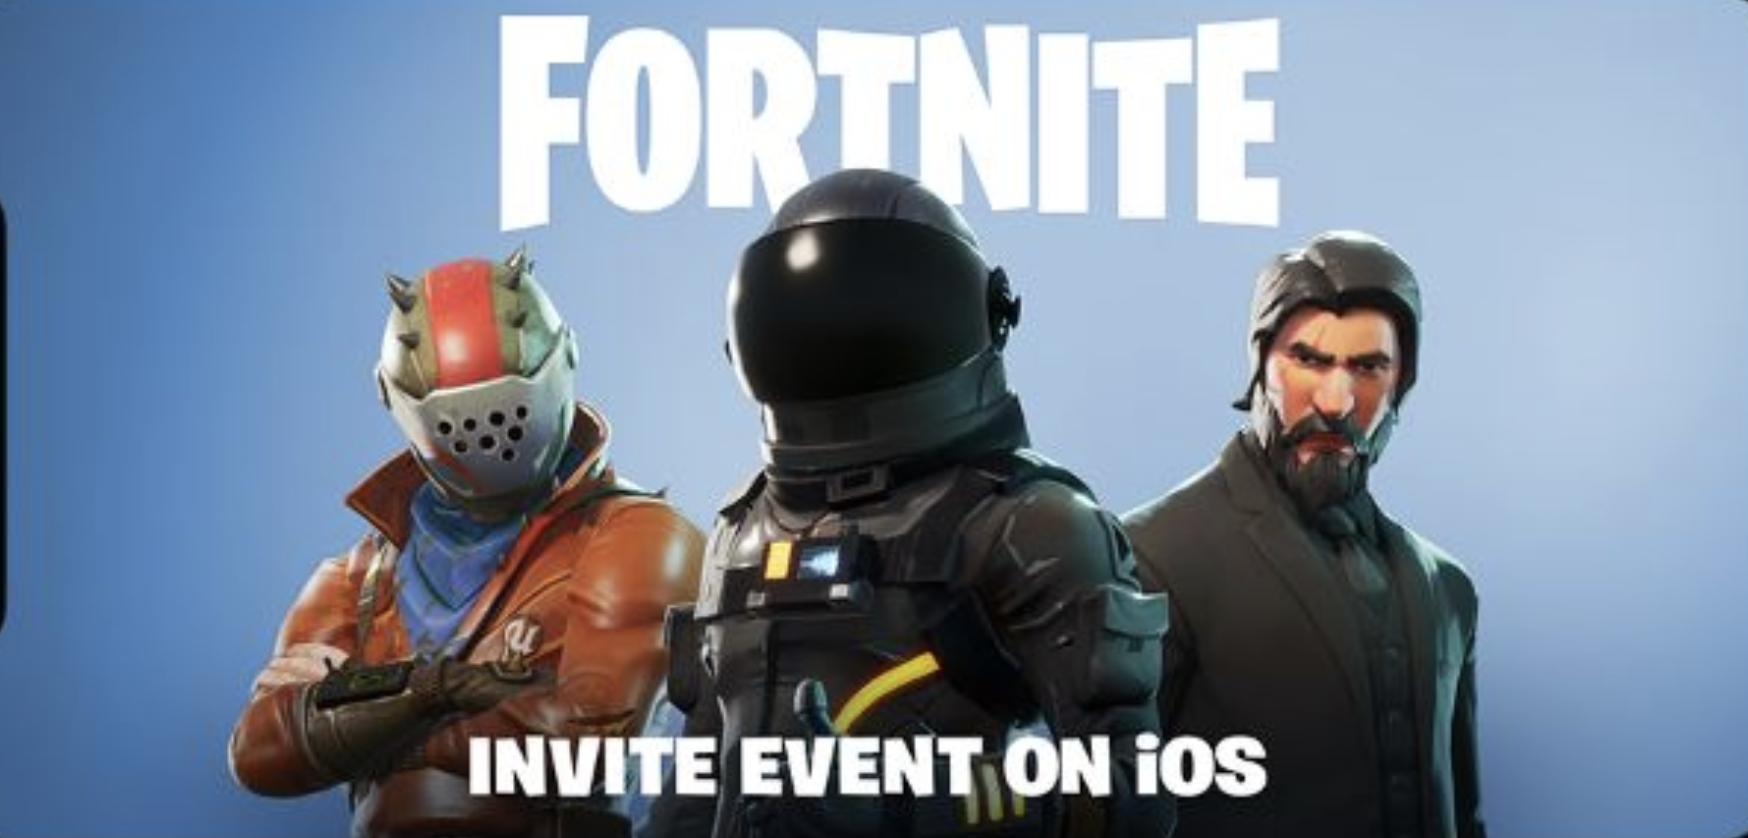 Fake Fortnite Apps For Android Spread Spyware Cryptominers Threatpost